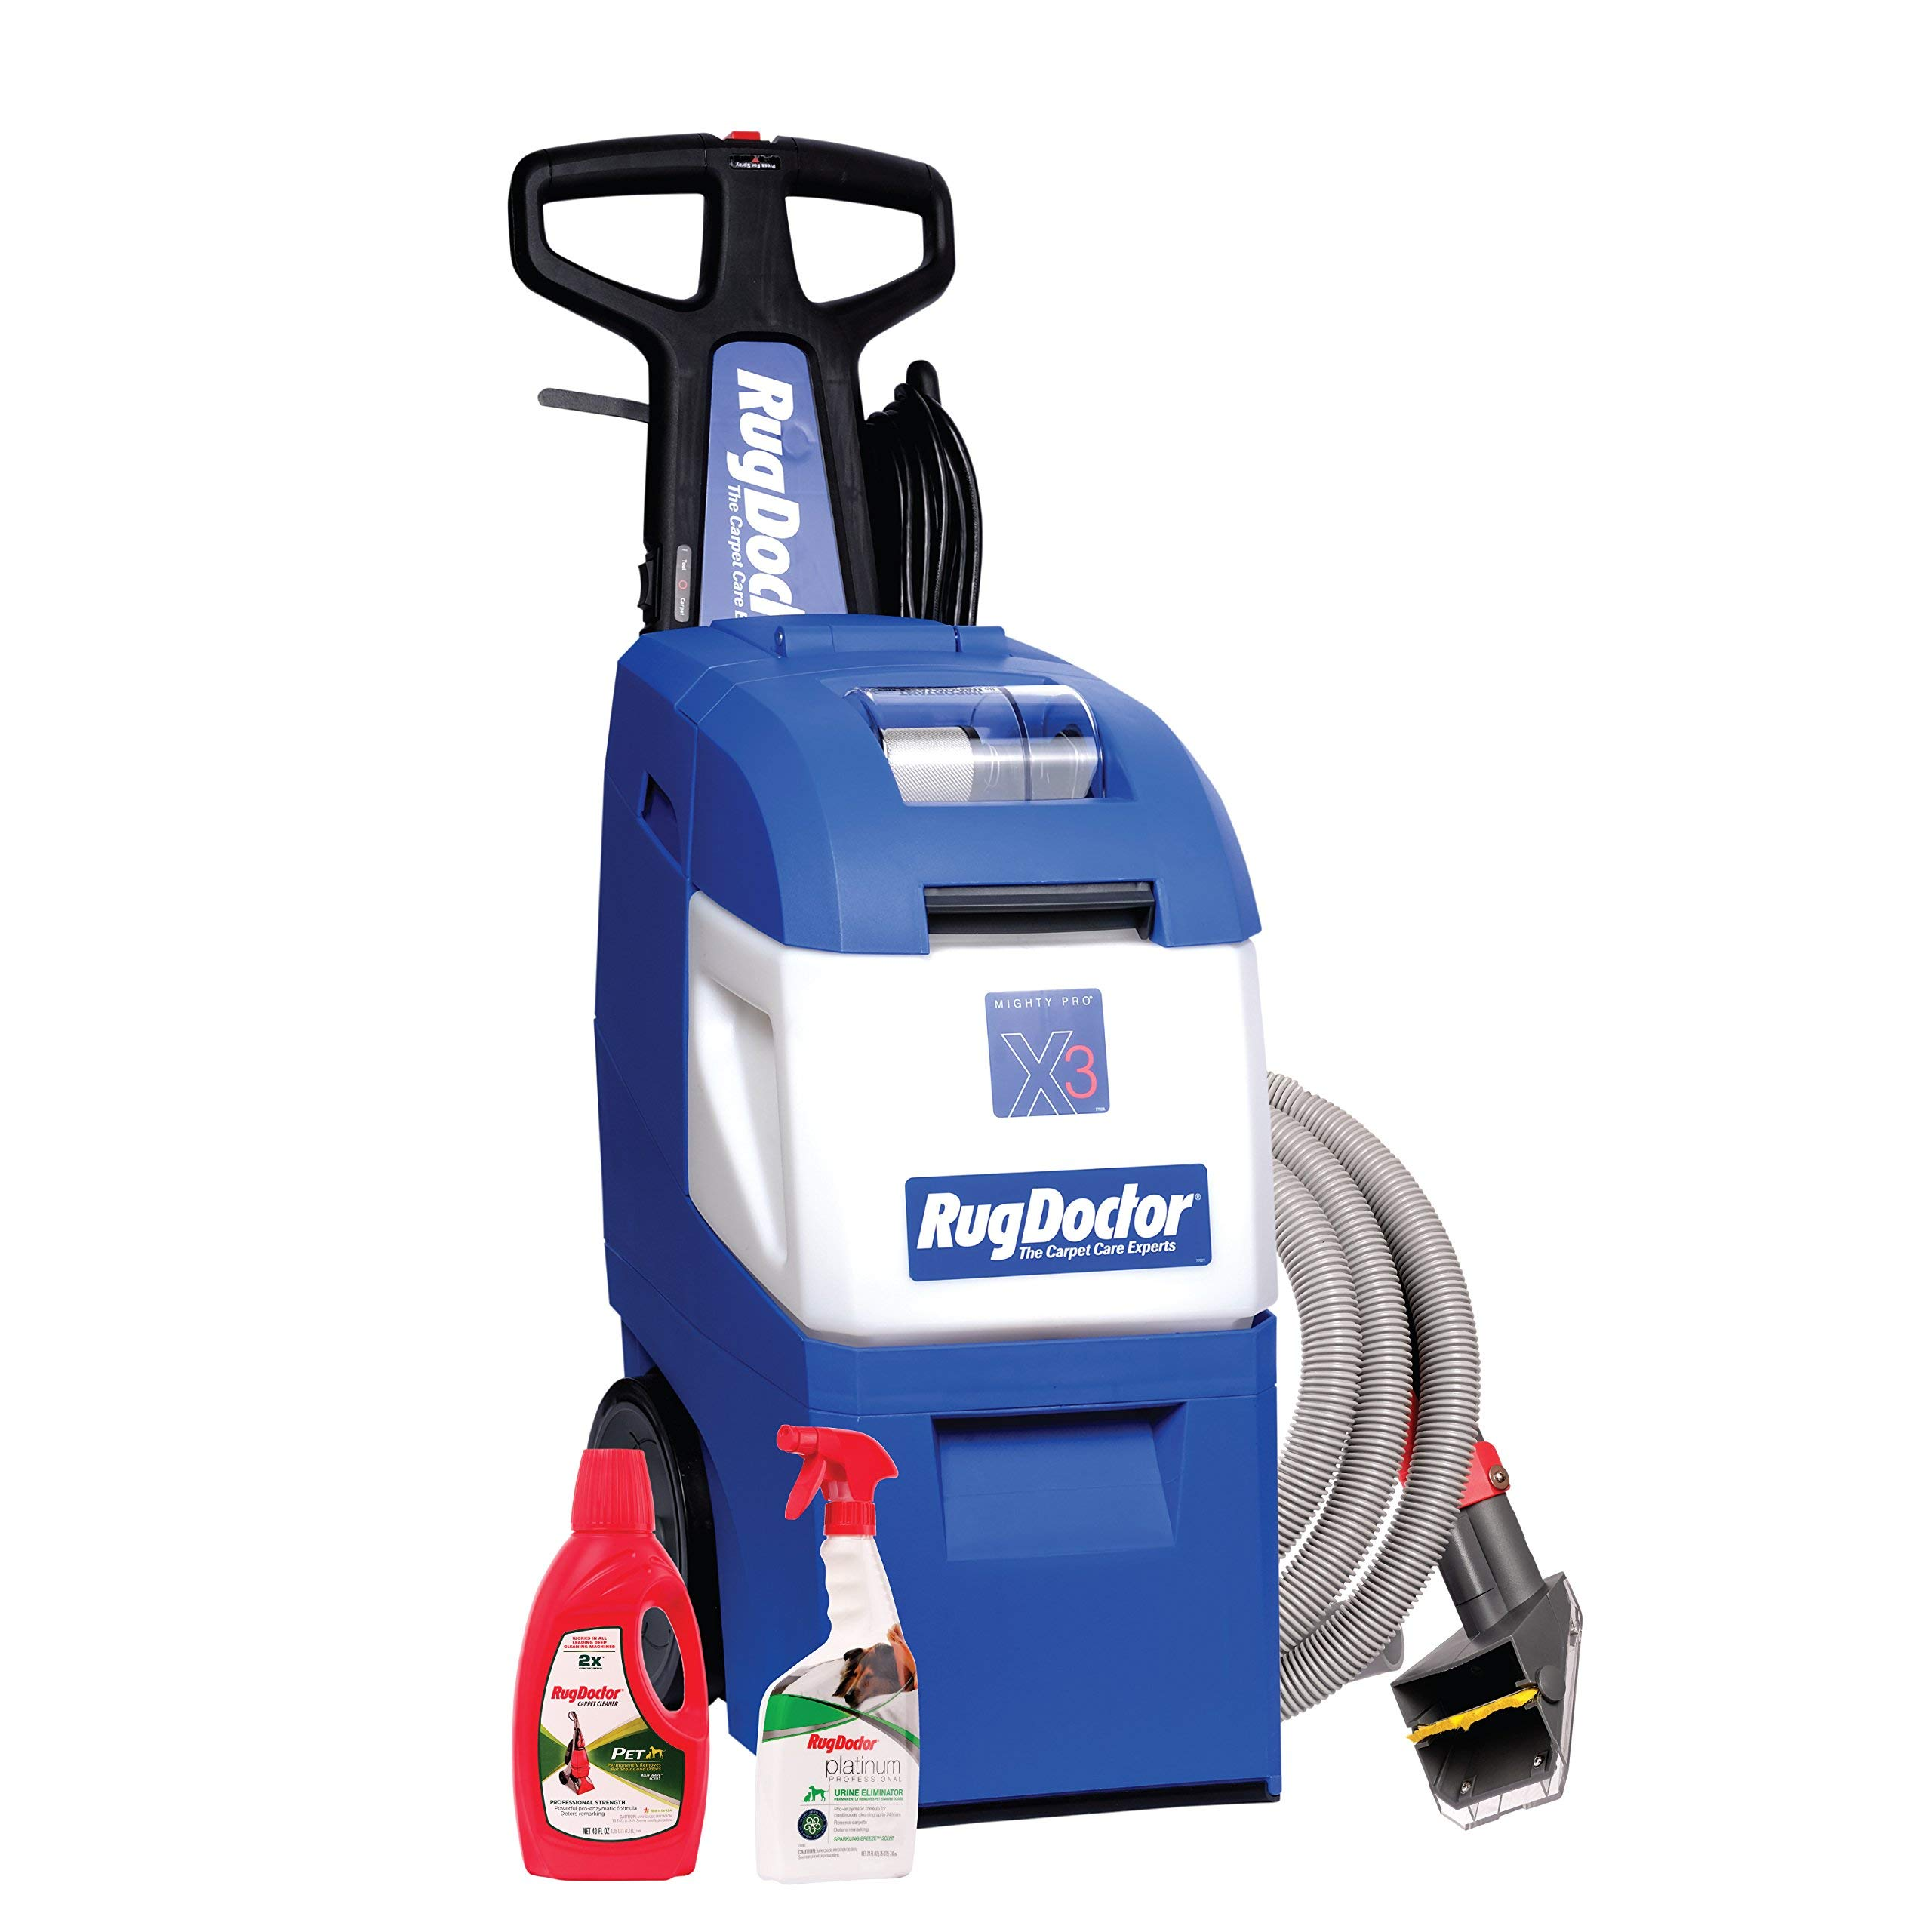 Rug Doctor Mighty Pro X3 Pet Pack, Deep Carpet Cleaning Machine with Upholstery Tool and Carpet Cleaning Solutions Included, Removes Deep Pet Stains and Neutralizes Odors (Renewed) by Rug Doctor